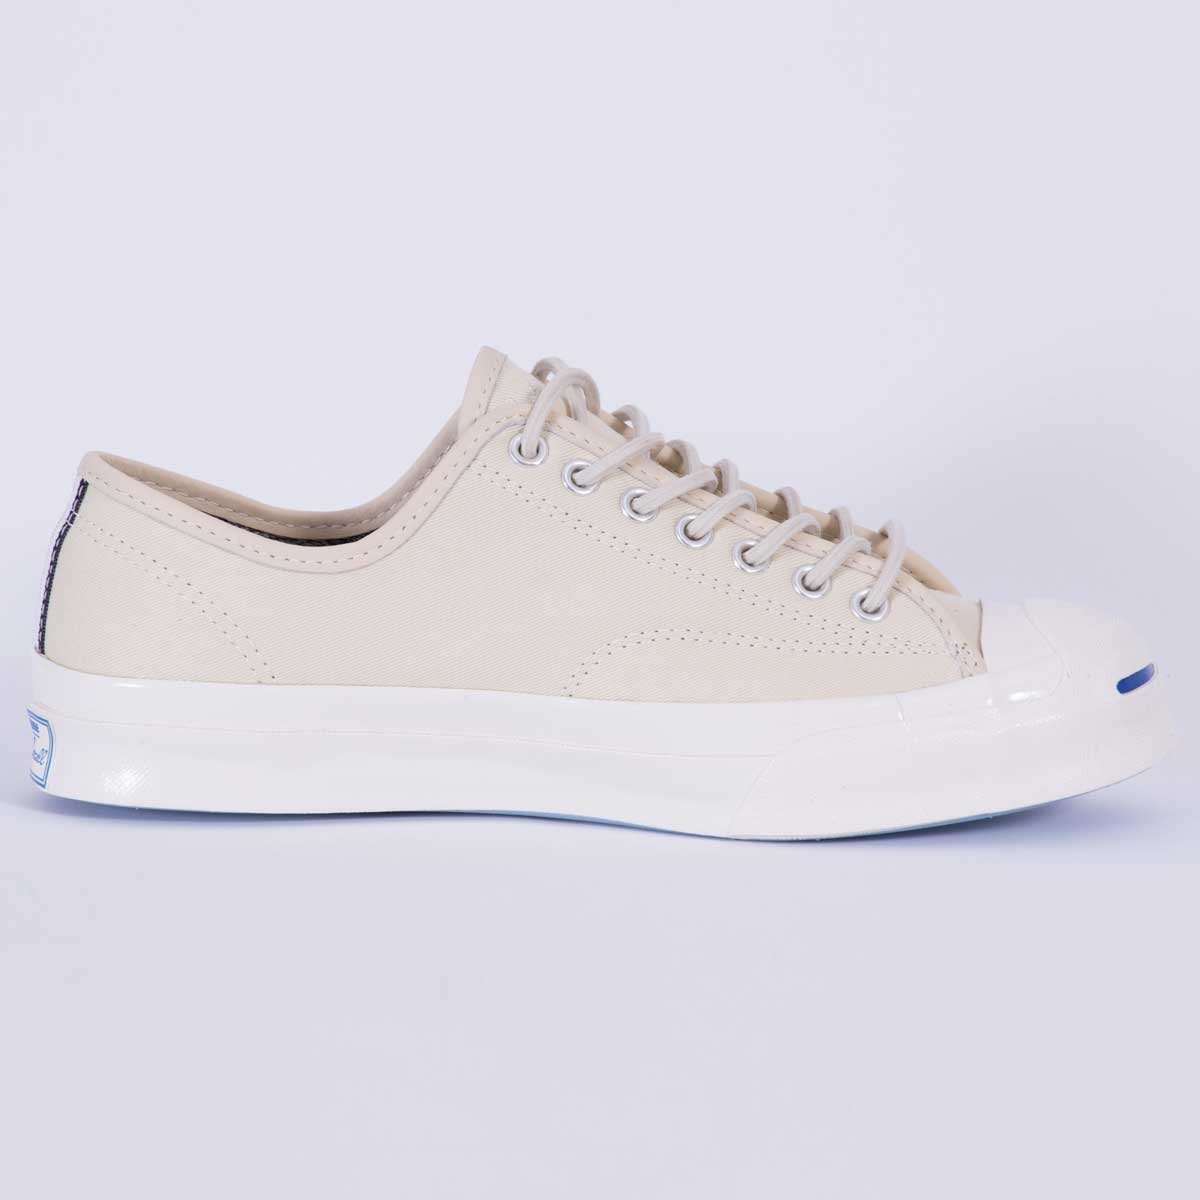 770d1e80e16254 Converse Jack Purcell Signature Twill Shield Canvas